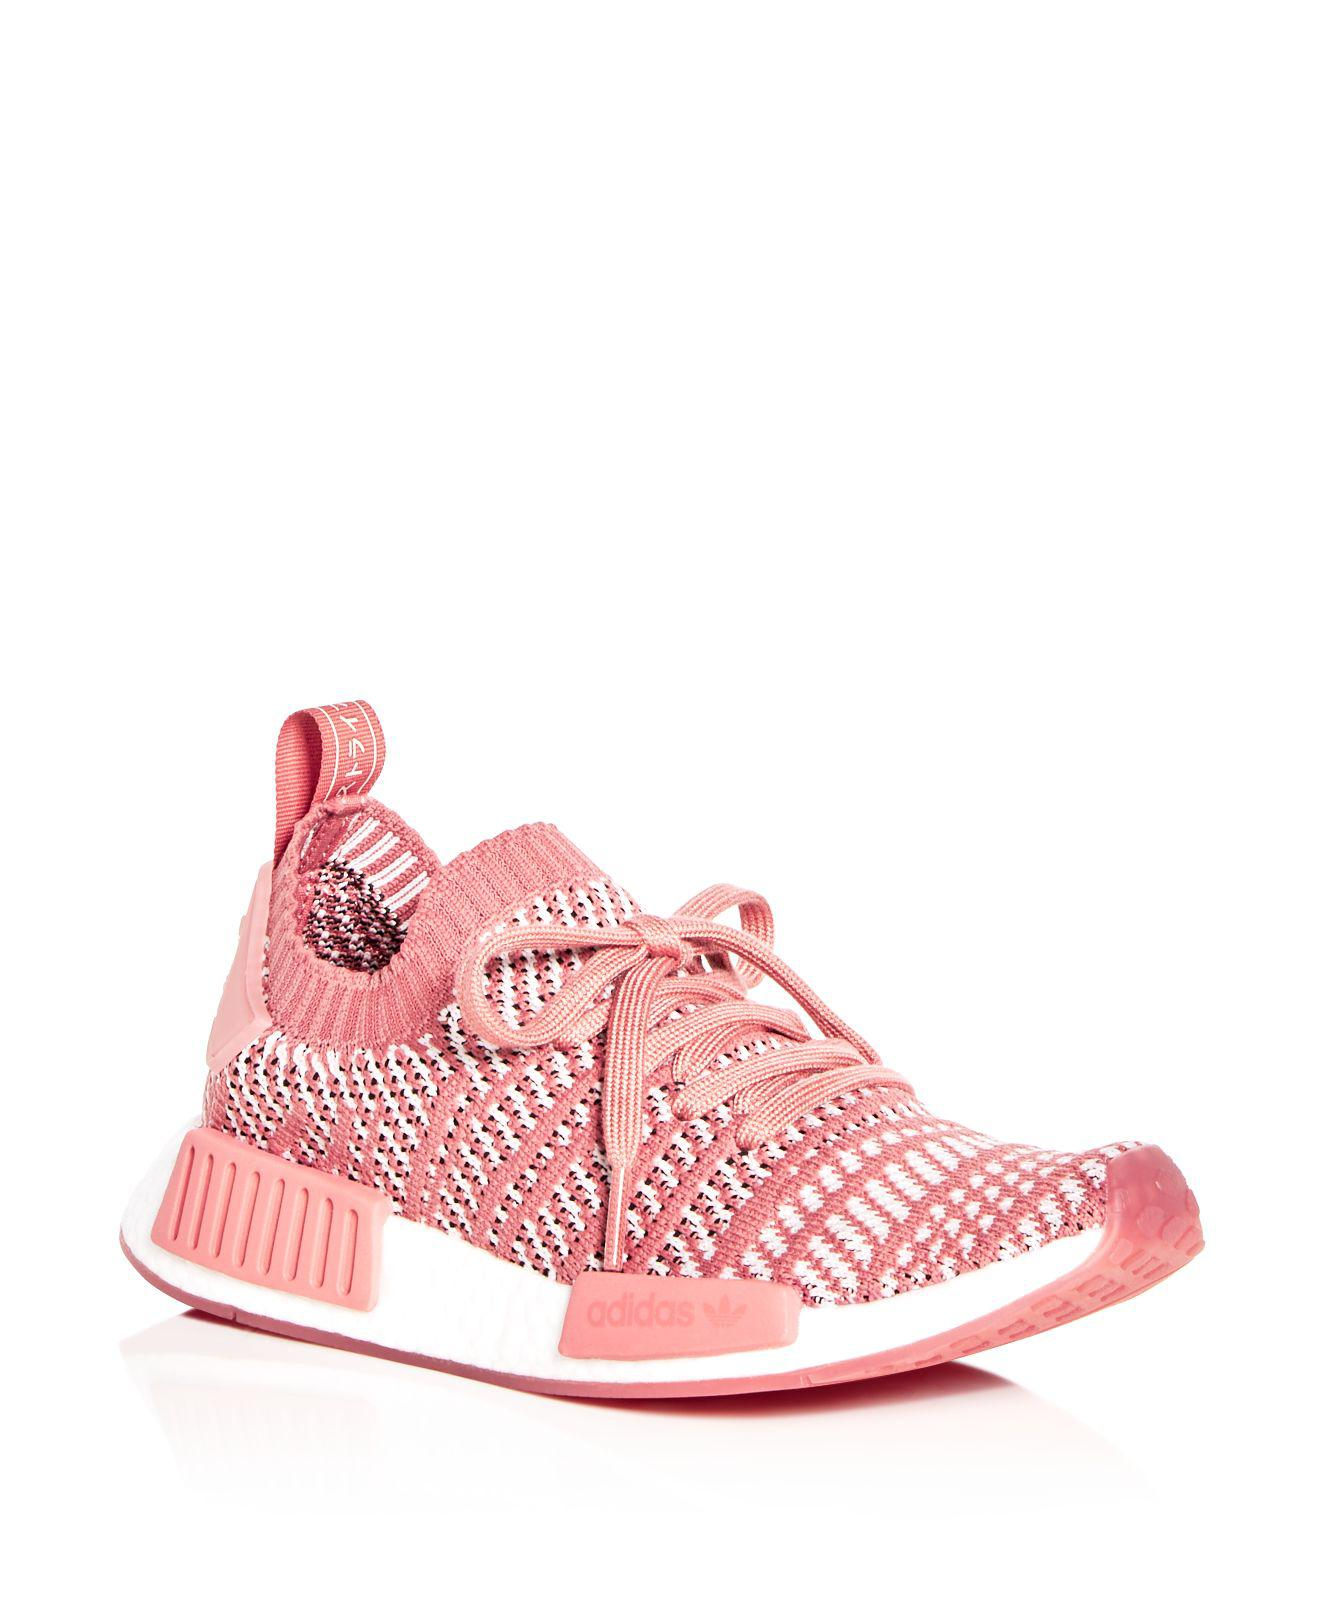 adidas Women's Nmd R1 Knit Lace Up Sneakers lN7tty6ZA